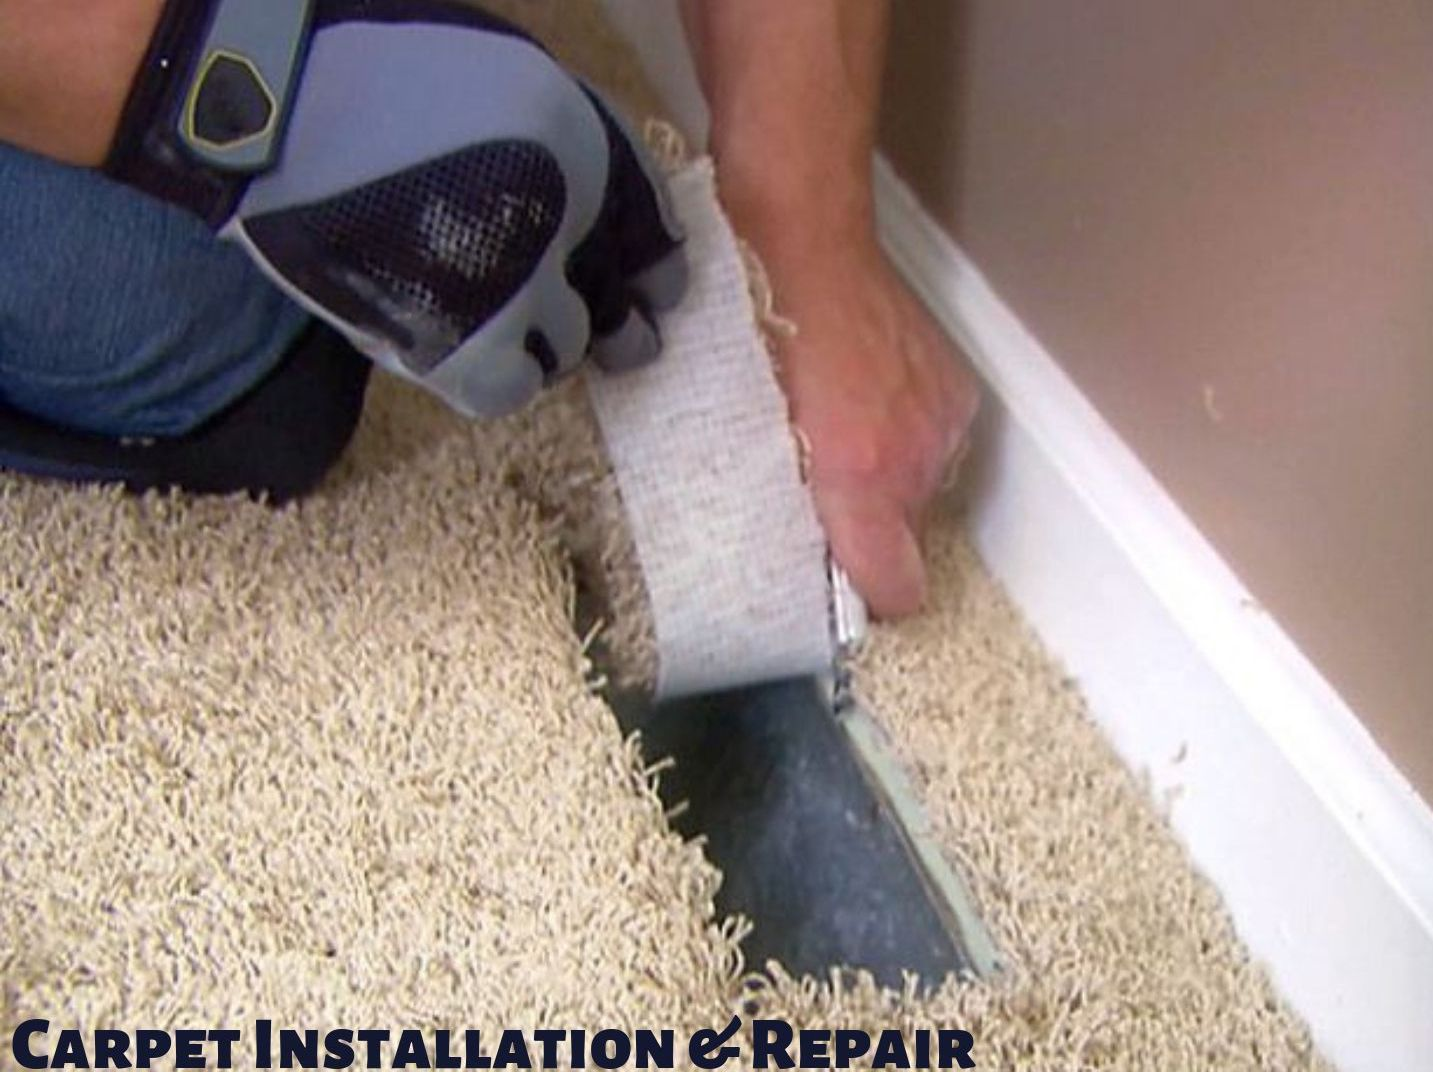 Professional Carpet Repair & Restretching Services in